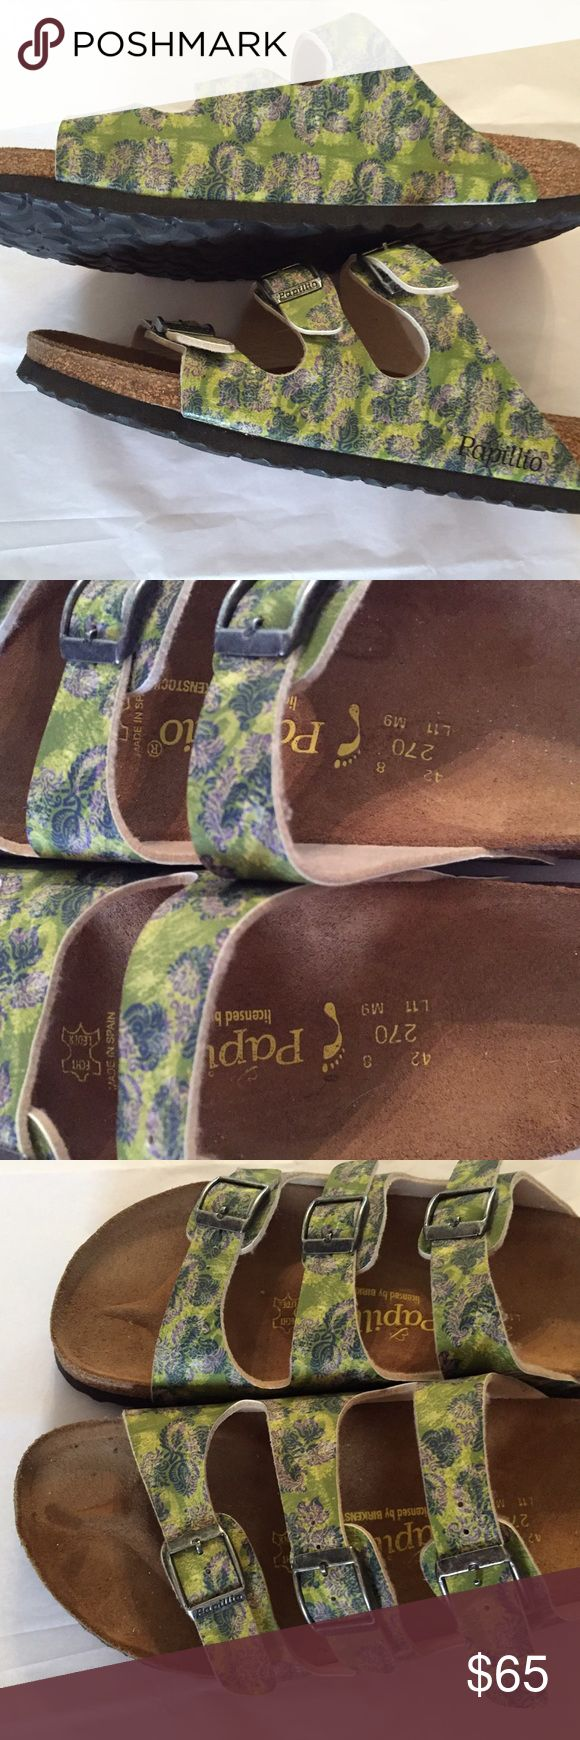 Papillio Florida Floral Birko size 11 Used Papillio Florida sandals in size 11. Style, comfort, and creative new materials and patterns make them seasonal favorites. Three straps from the bottom of your toes to your instep keep you secure, but give you the easy wear of a slip-on. Birkenstock Shoes